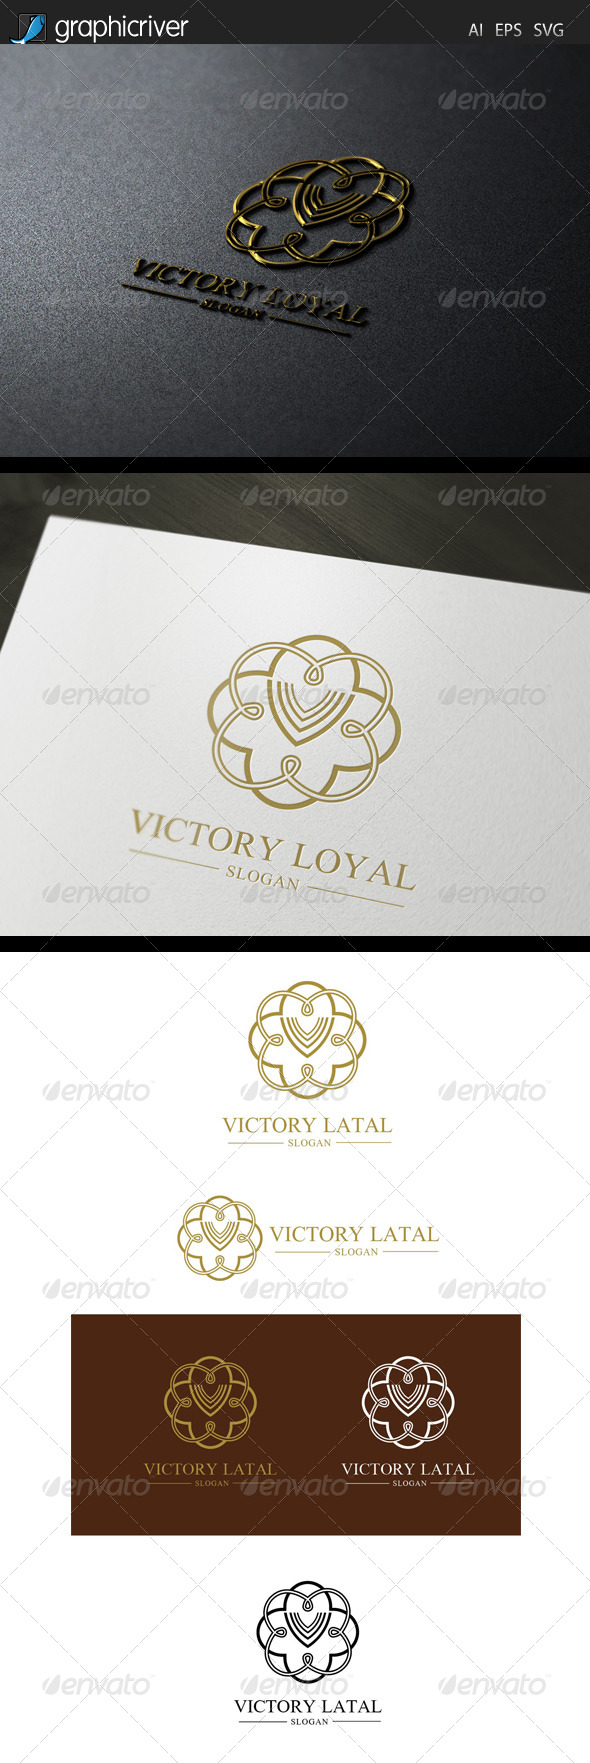 GraphicRiver Victory Royal Logo 7713822